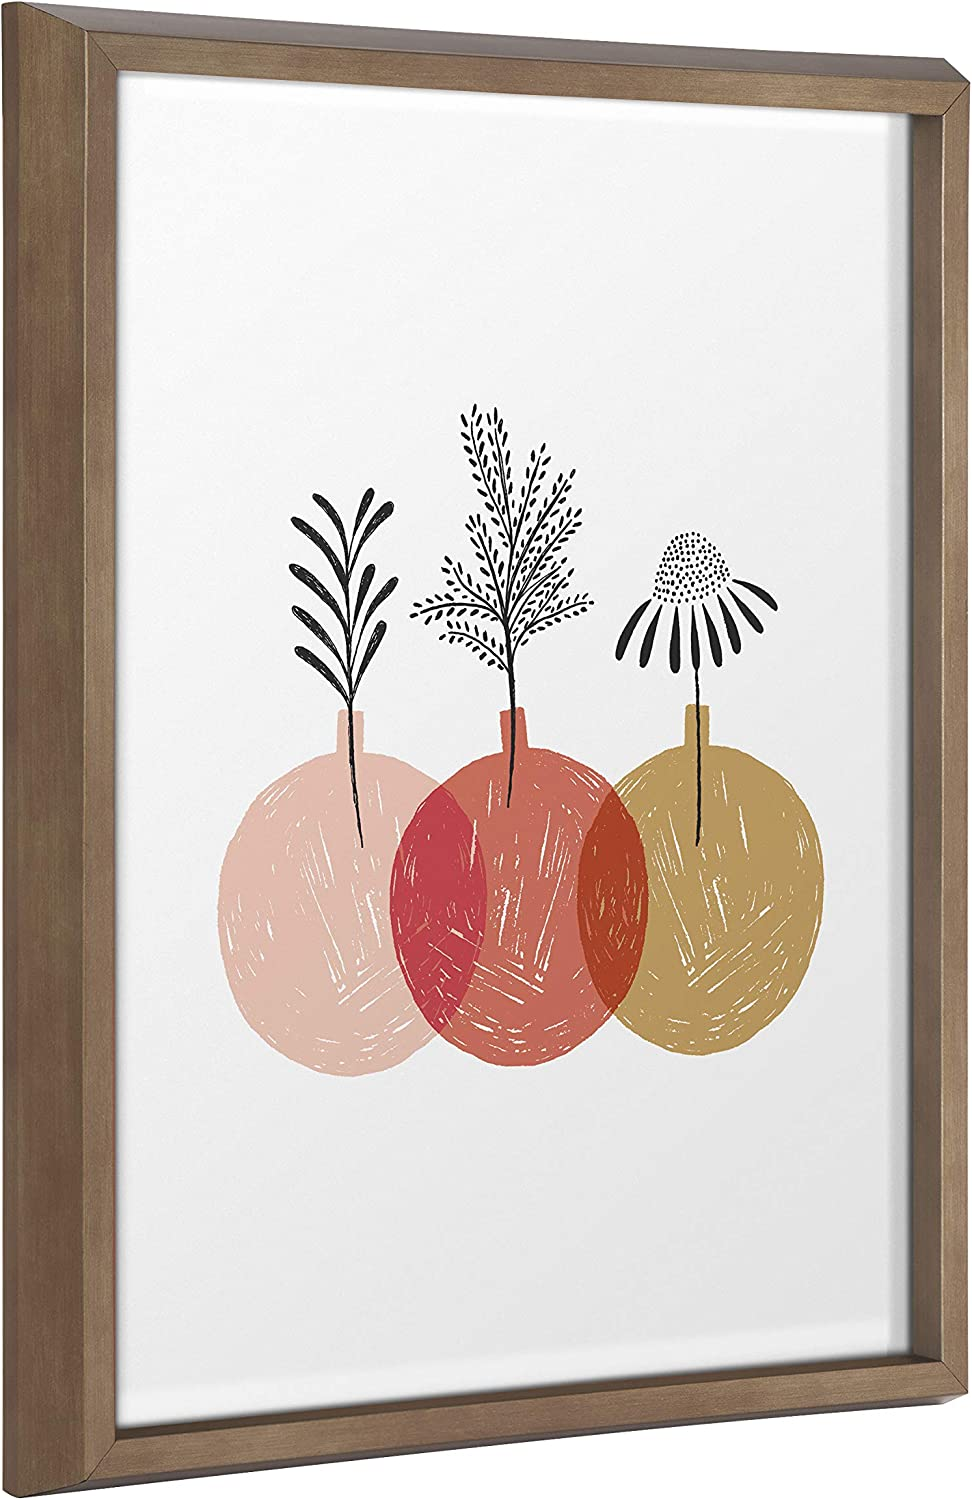 Kate and Laurel Blake Plant Trio Framed Printed Glass Wall Art by Duchess Plum, 16x20 Gold, Modern Floral Art for Wall